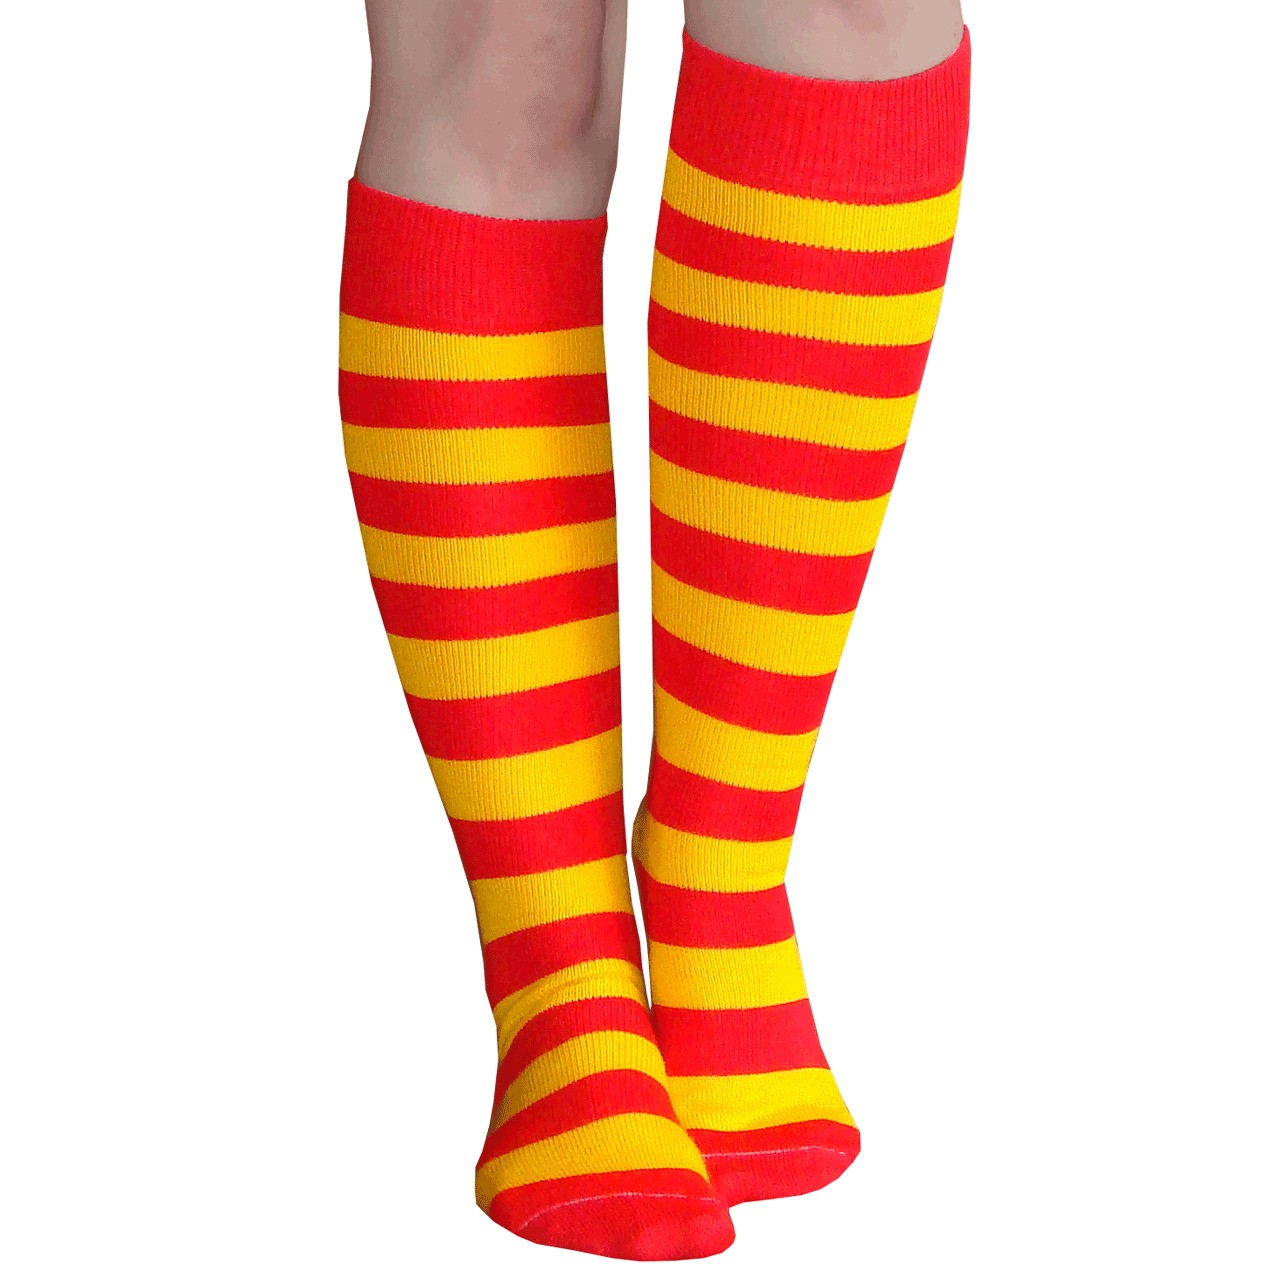 818c232c5e330 Striped Red/Gold Knee Highs